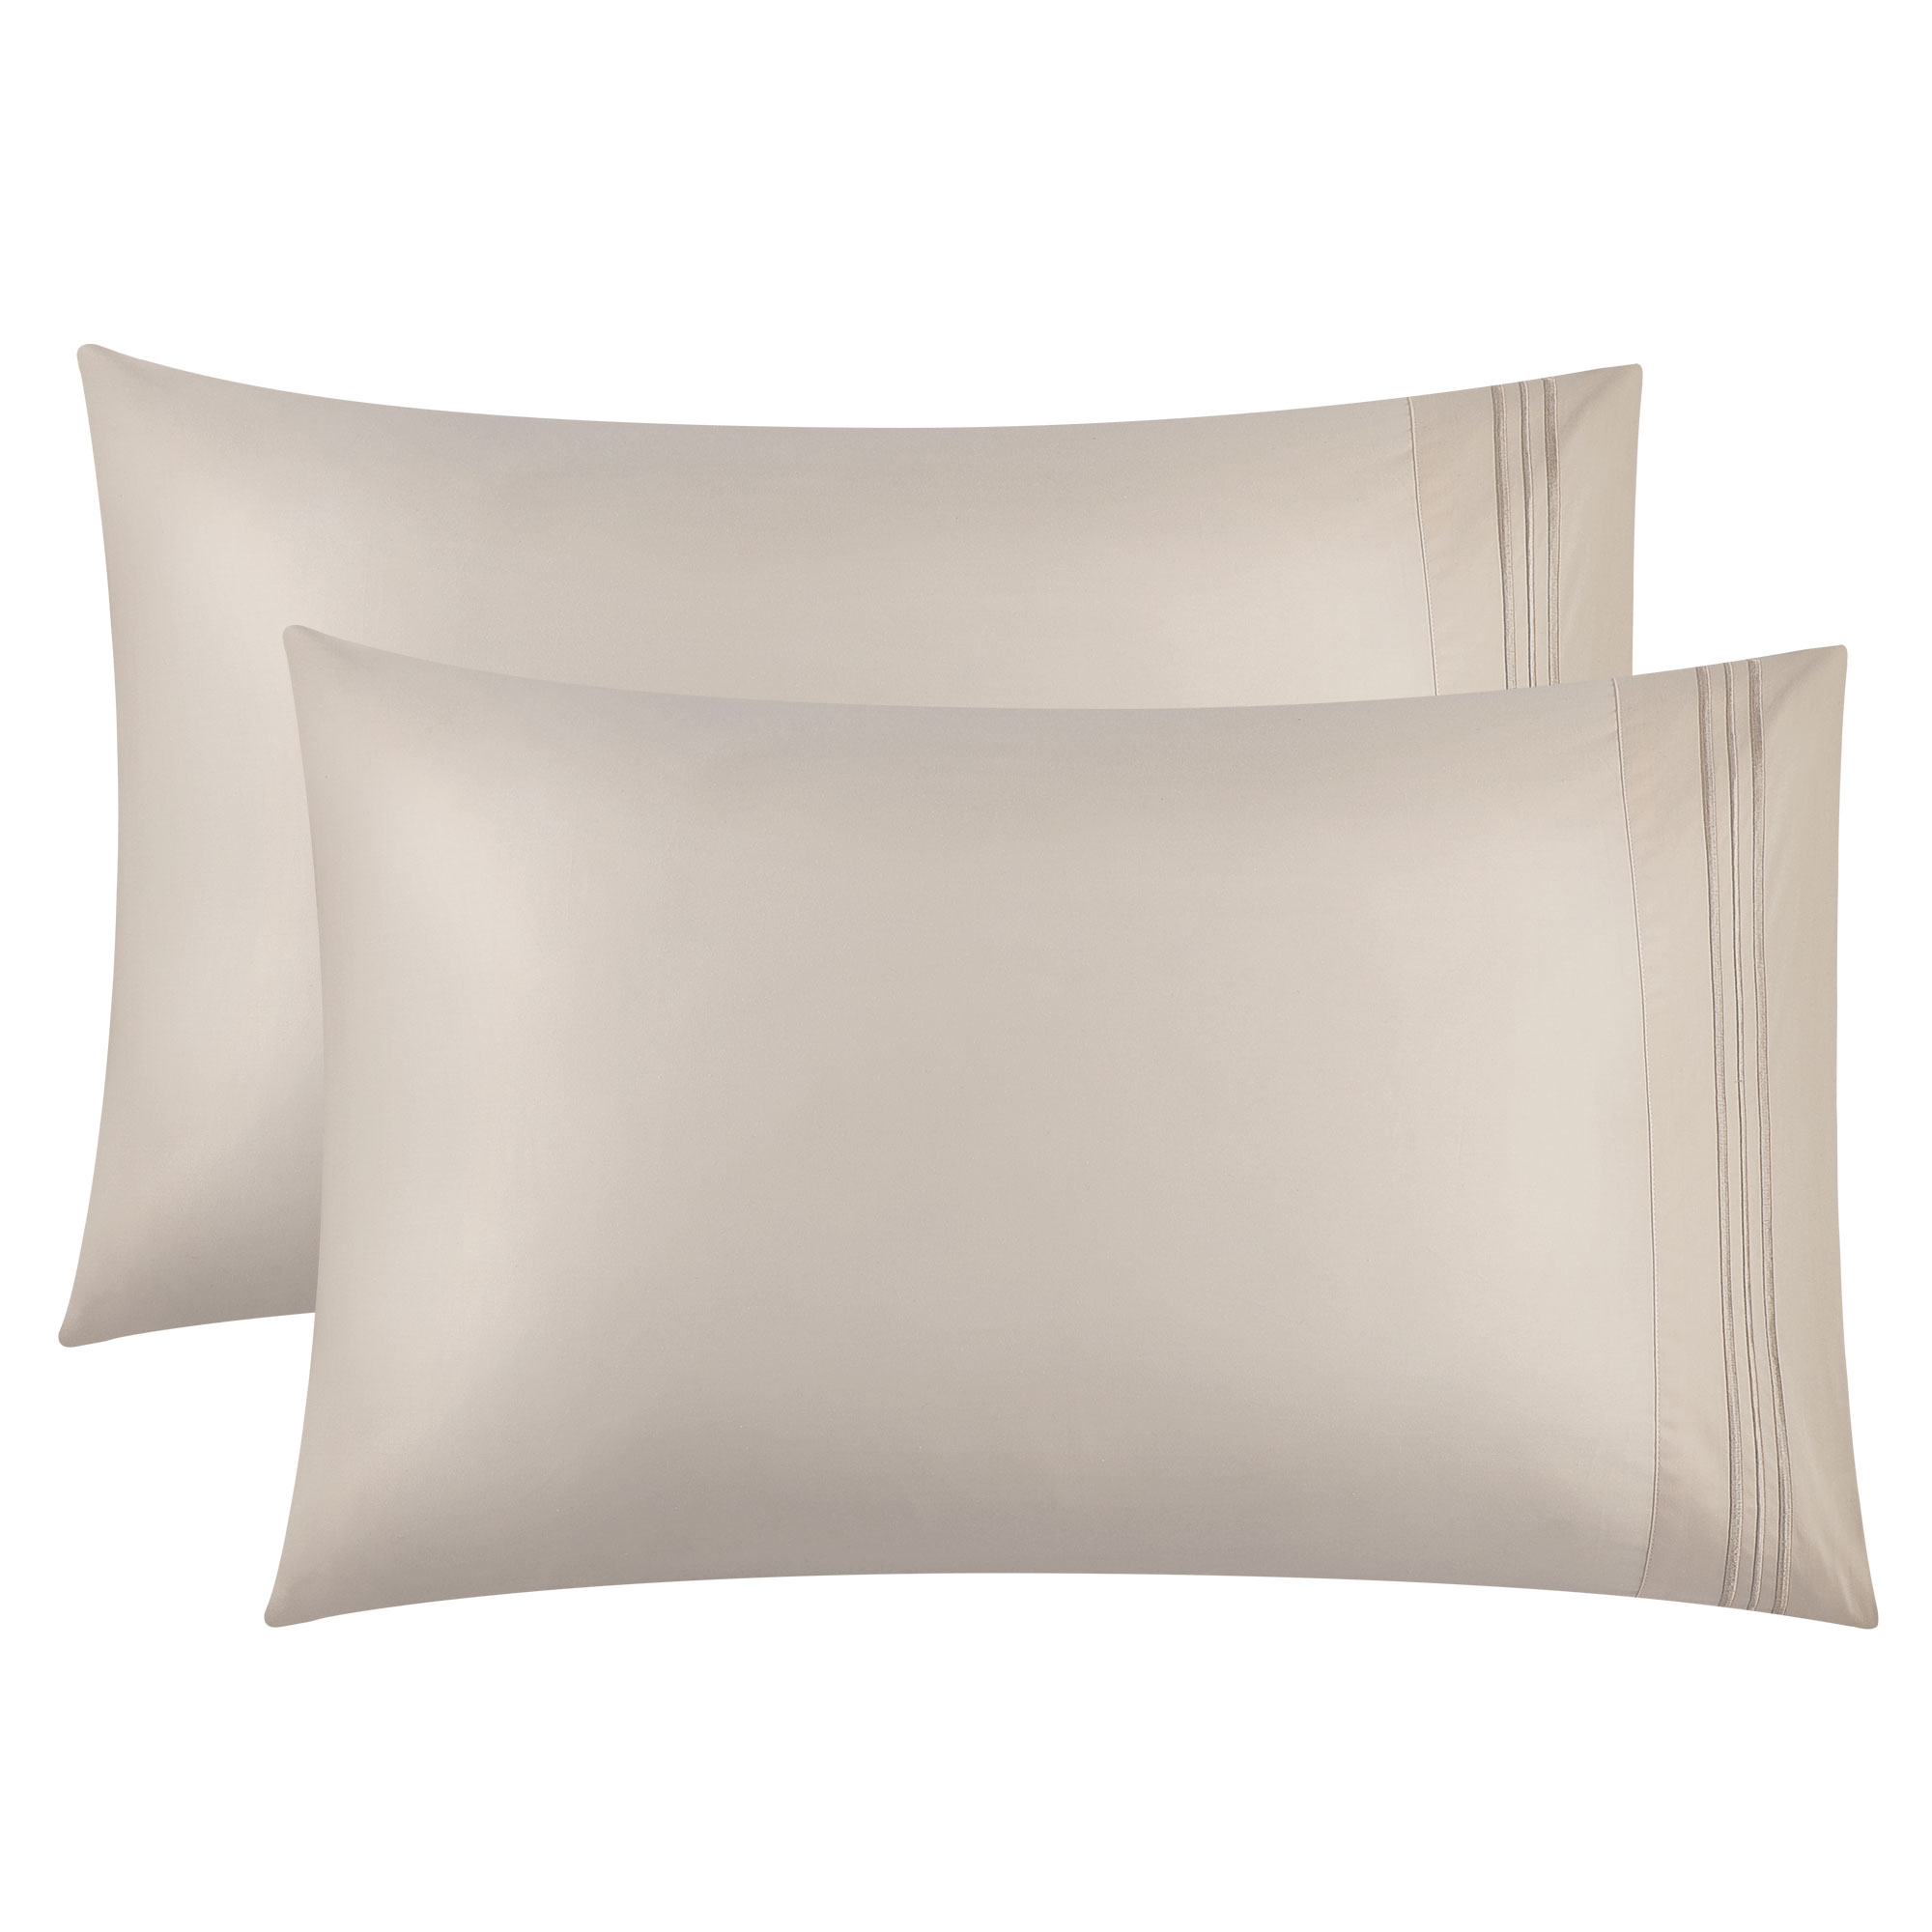 100% Combed Cotton Embroidered Pillow Cases Pillowcase,2pcs,Beige,King Size